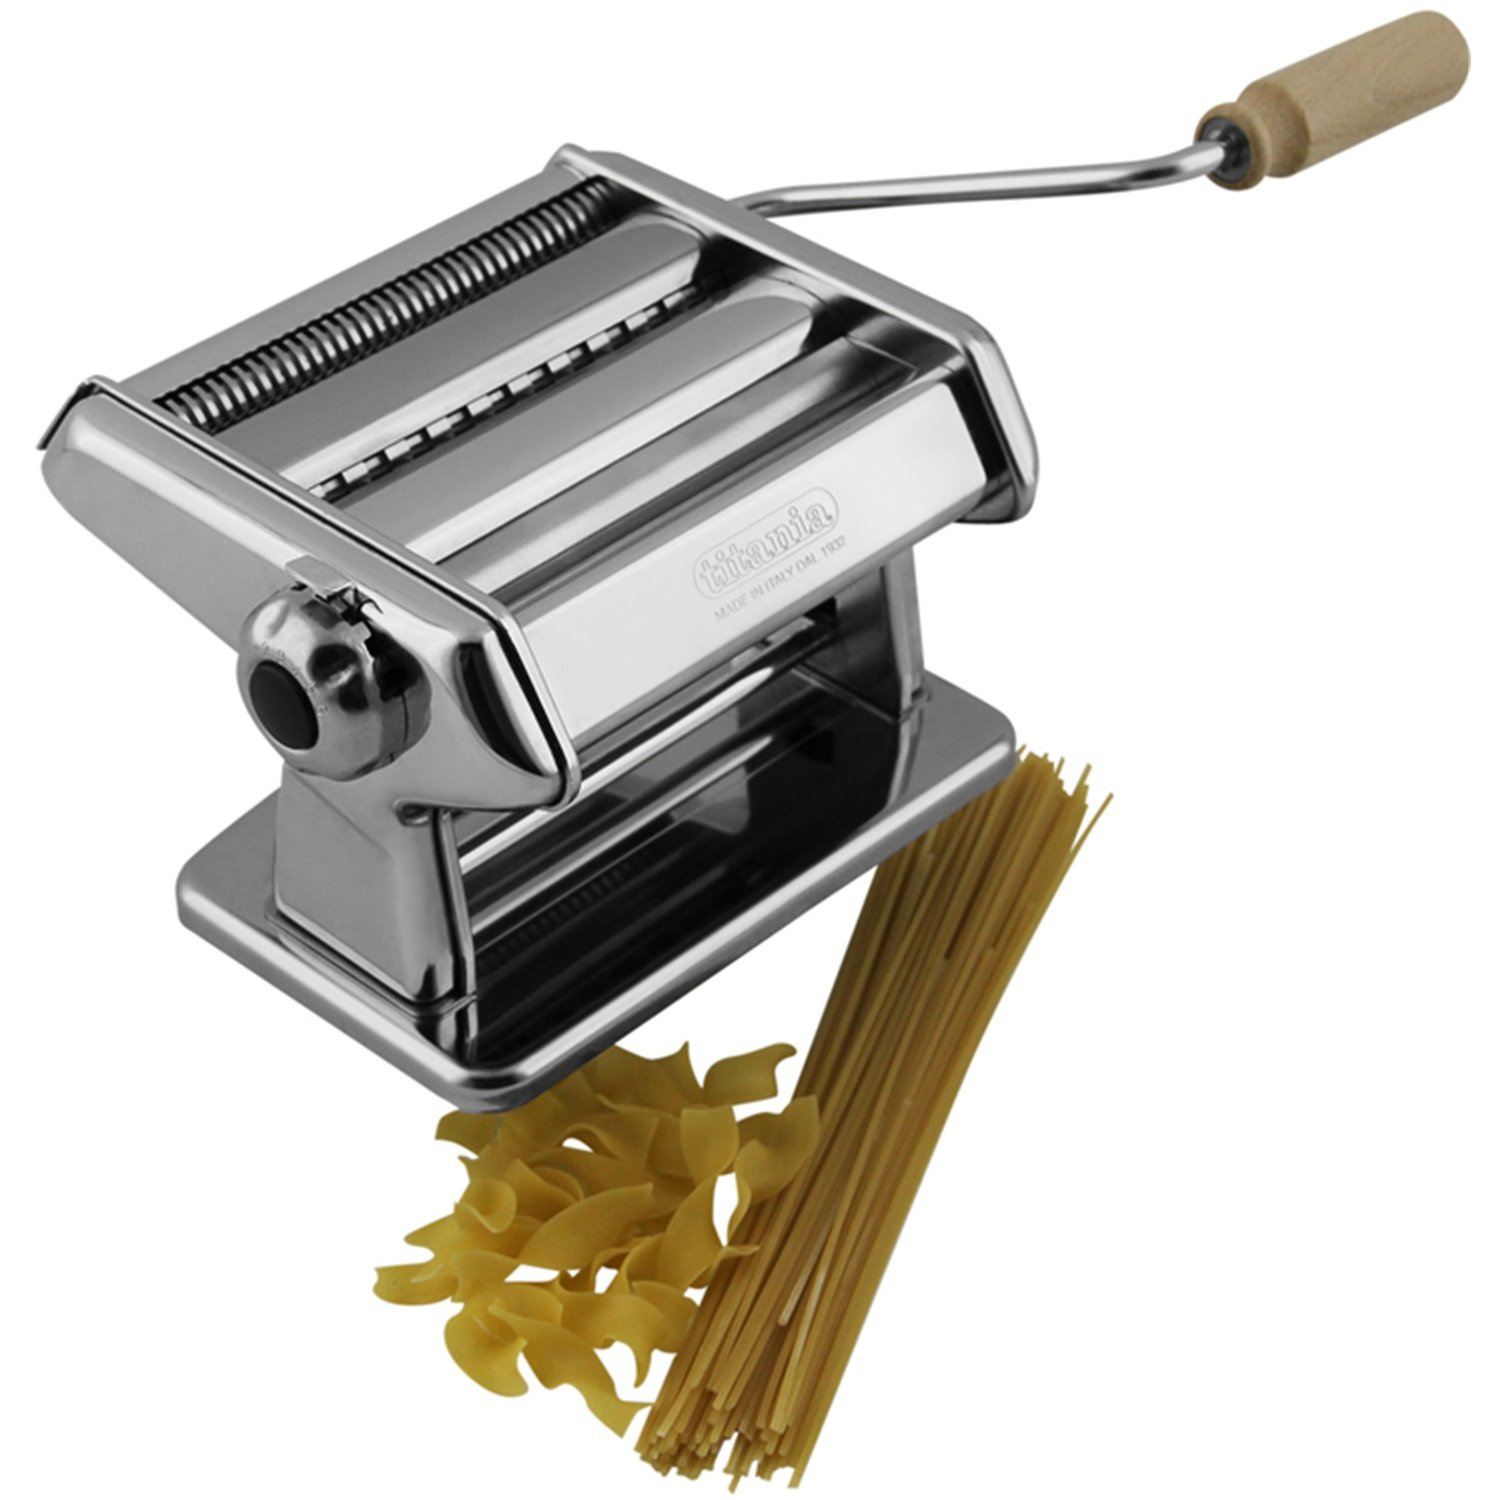 Pasta Maker Machine by Imperia- Heavy Duty Steel Construction w Easy Lock Dial and Wood Grip Handle- Model 190 by CucinaPro